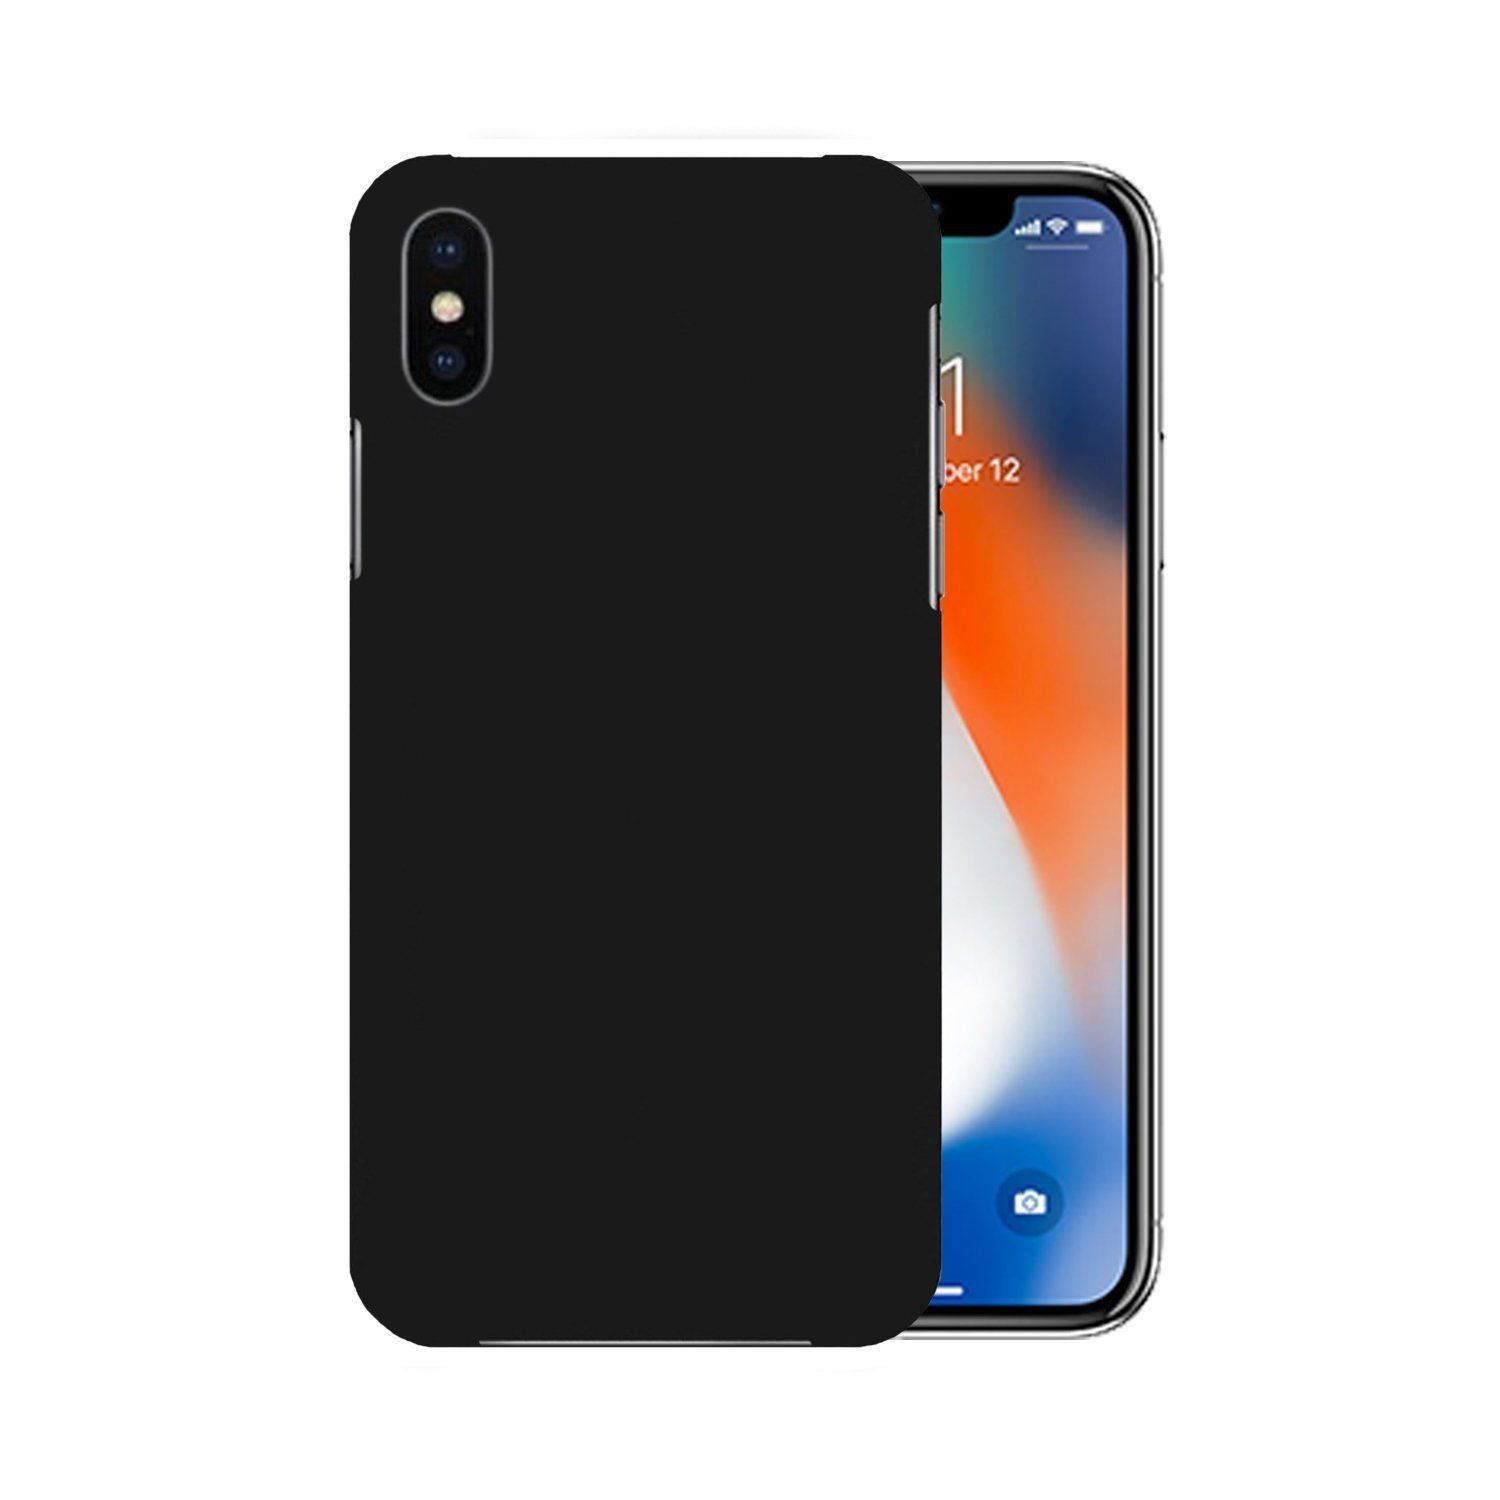 b0bbbf387aa Xiaomi Redmi Note 5 Pro Plain Cases Colorcase - Black - Plain Back Covers  Online at Low Prices